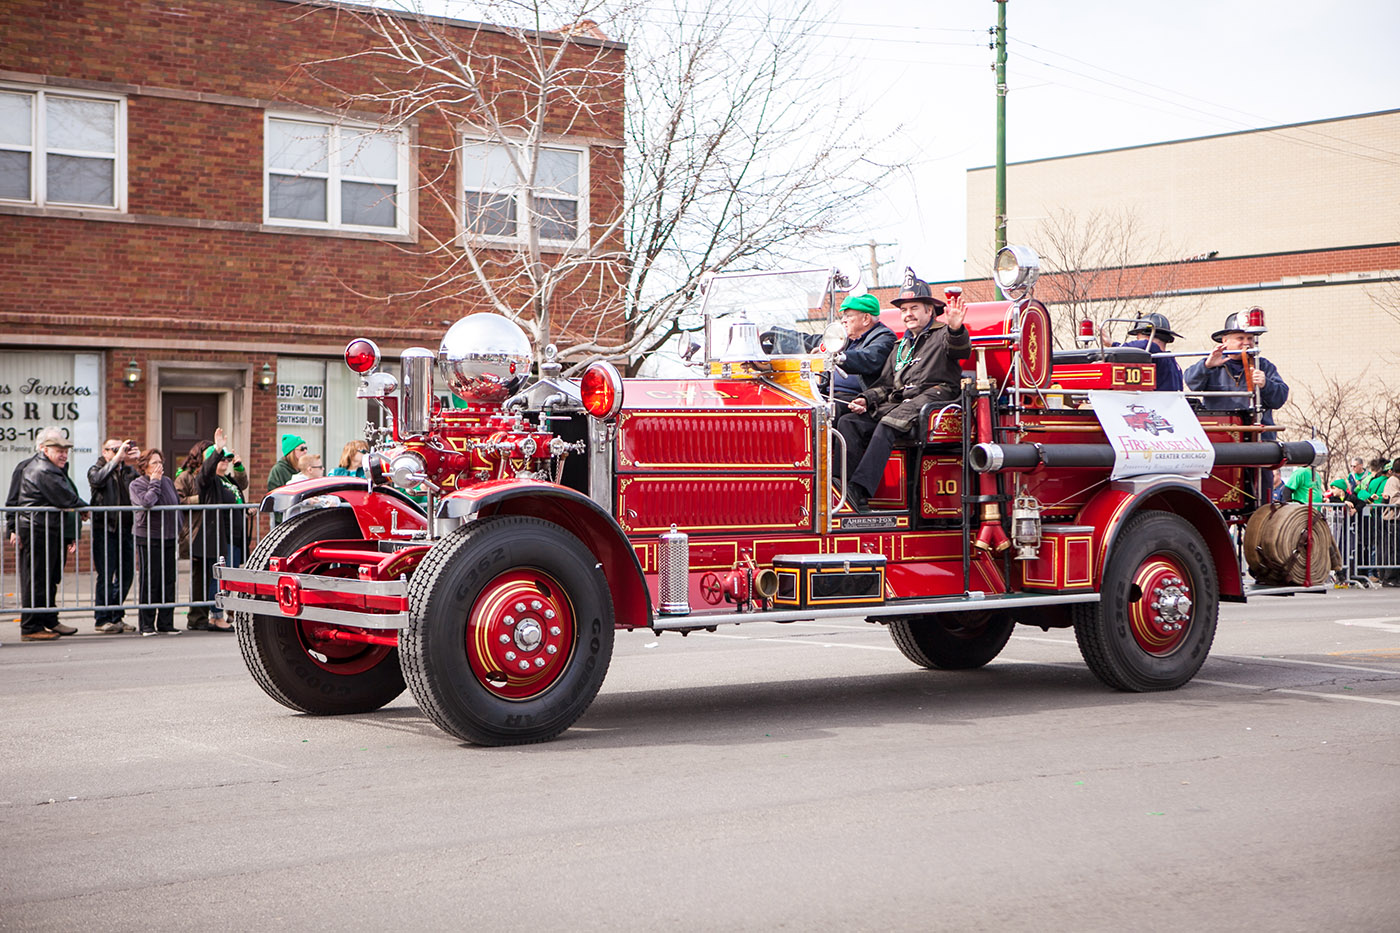 Fire truck at the Chicago South Side Irish Parade 2015 - St. Patrick's Day